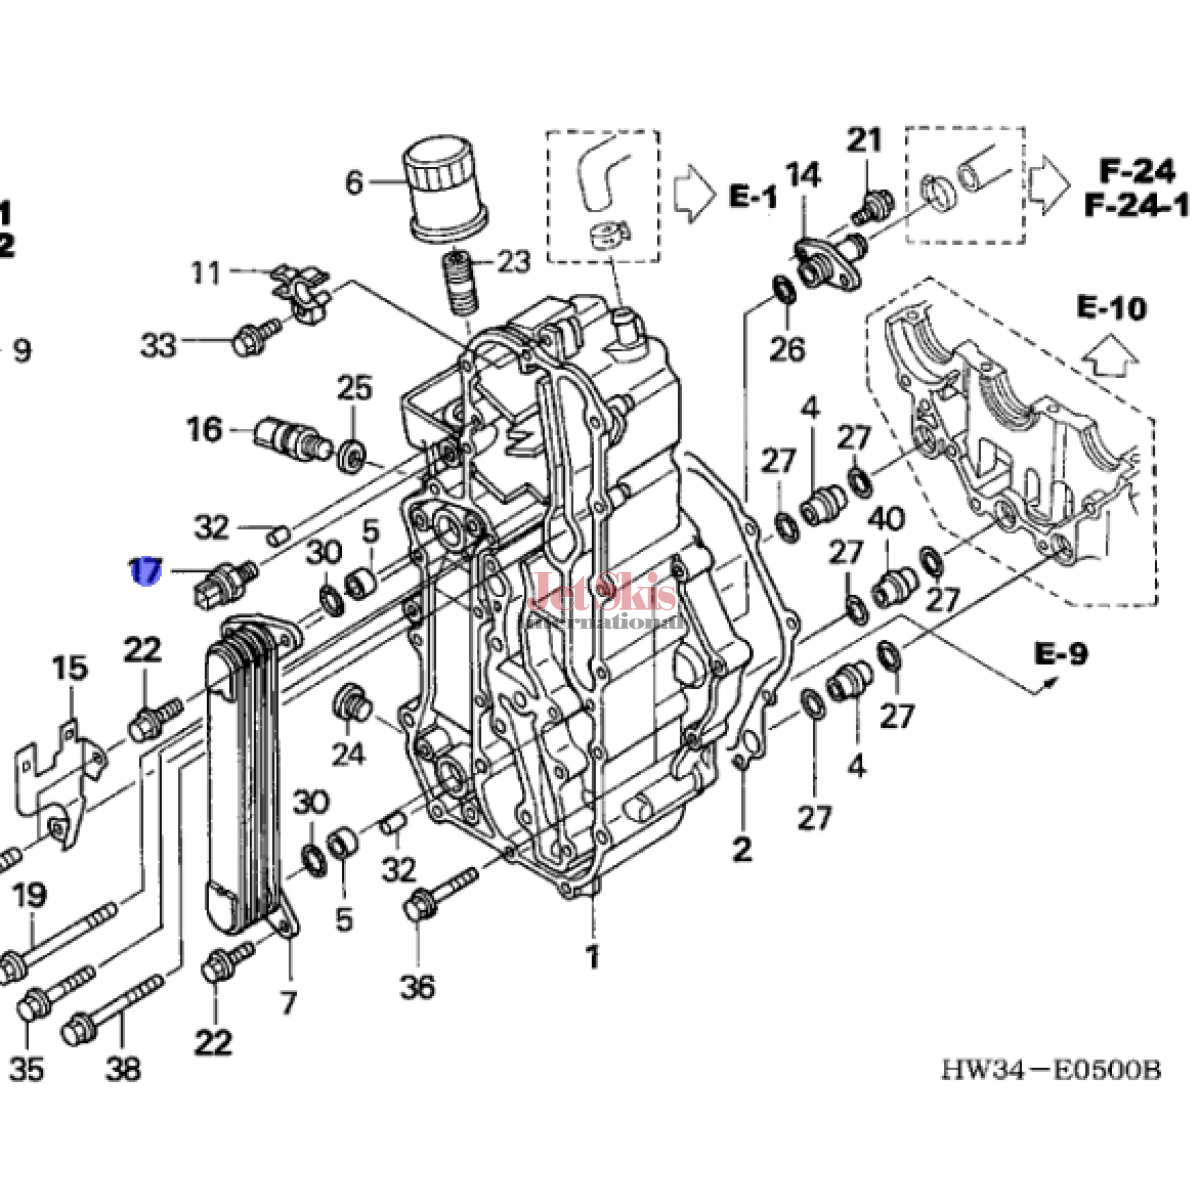 Honda aquatrax 37240 phm 003 switch assy oil pressure jet skis diagram of 37240 phm 003 engine location at 56 ford f100 wiring diagram